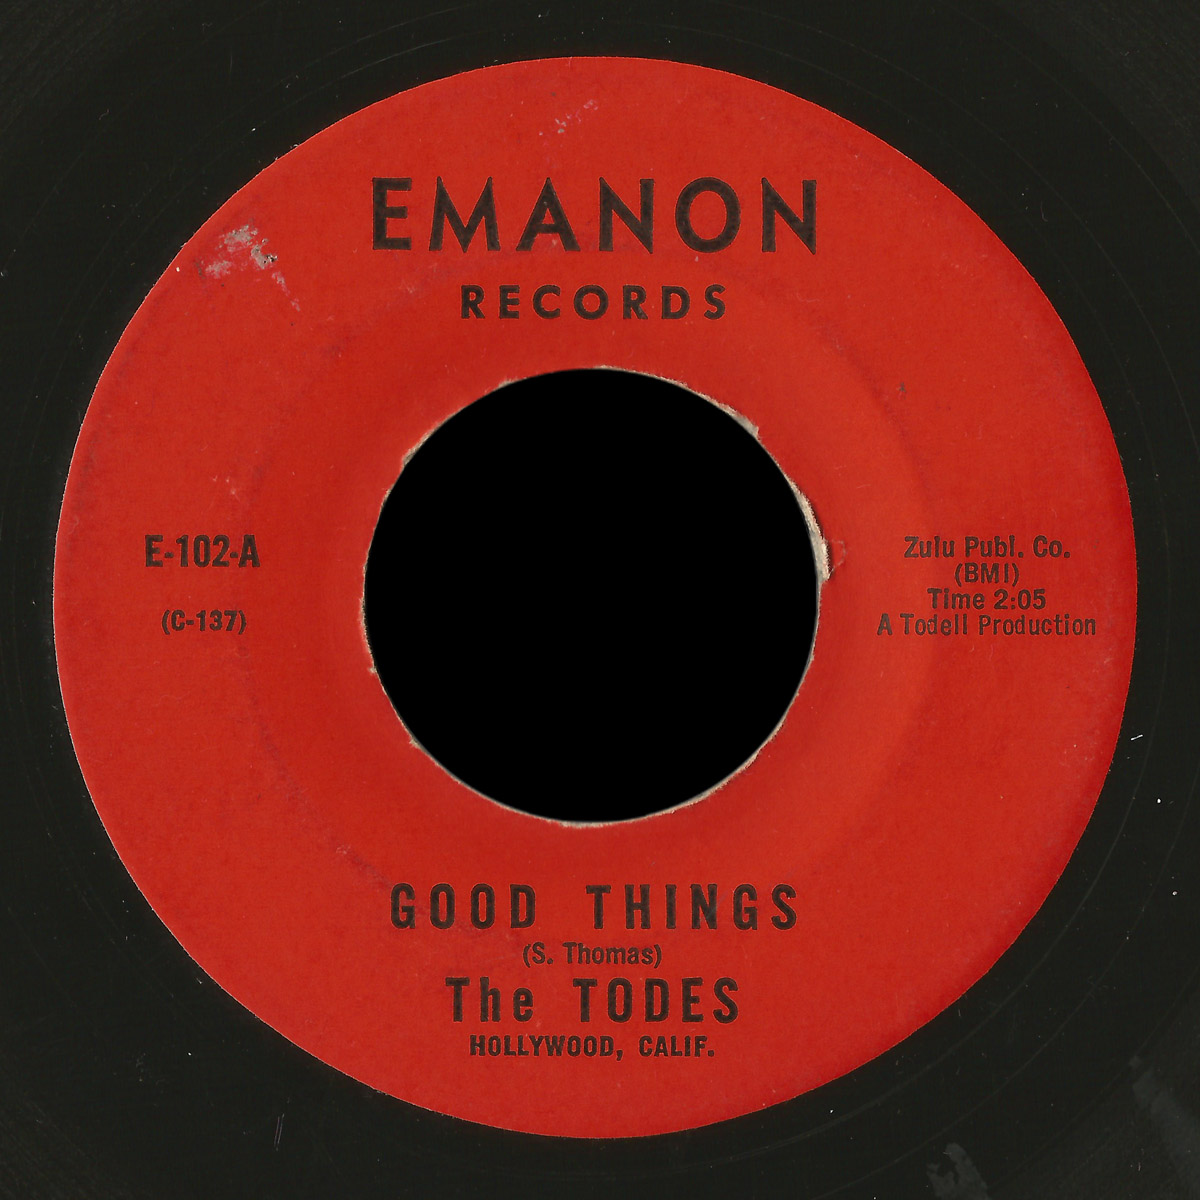 Todes Emanon 45 Good Things